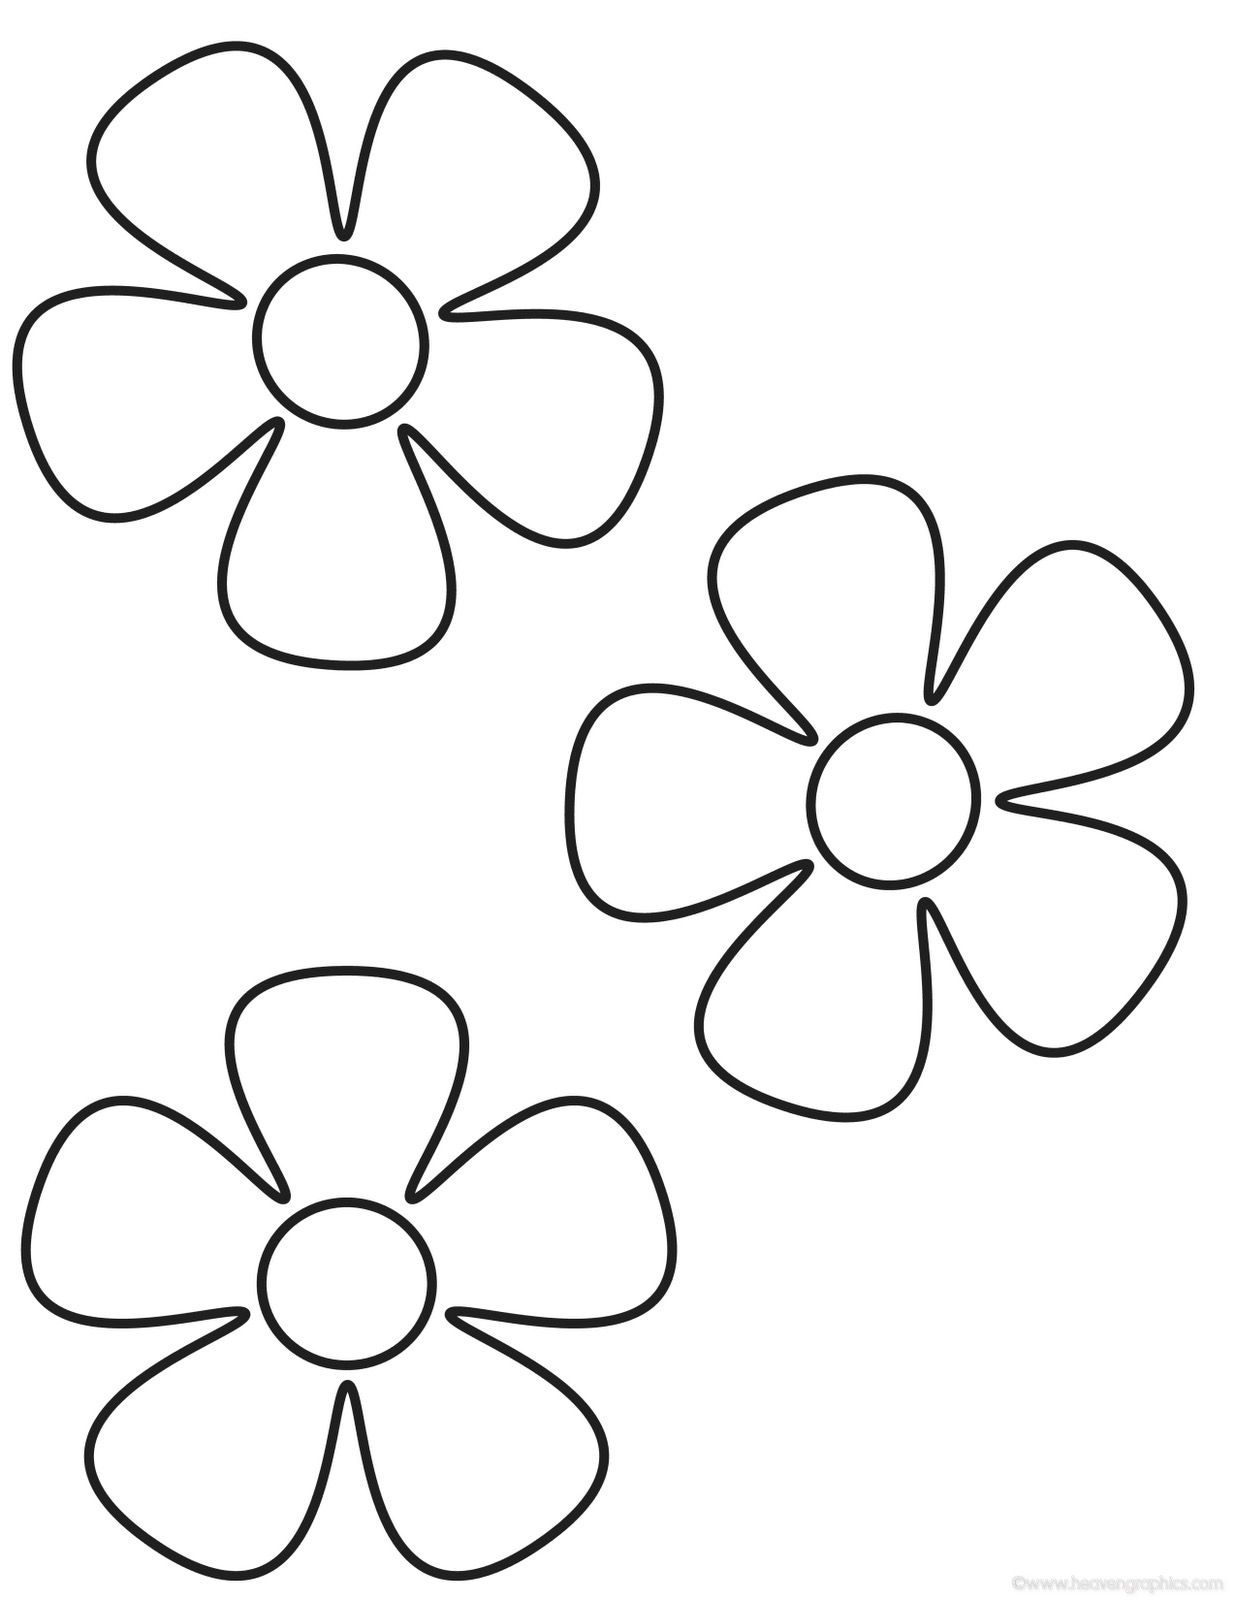 easy cute rose coloring pages pin by sherry stephan on flower coloring pages flower easy coloring pages cute rose